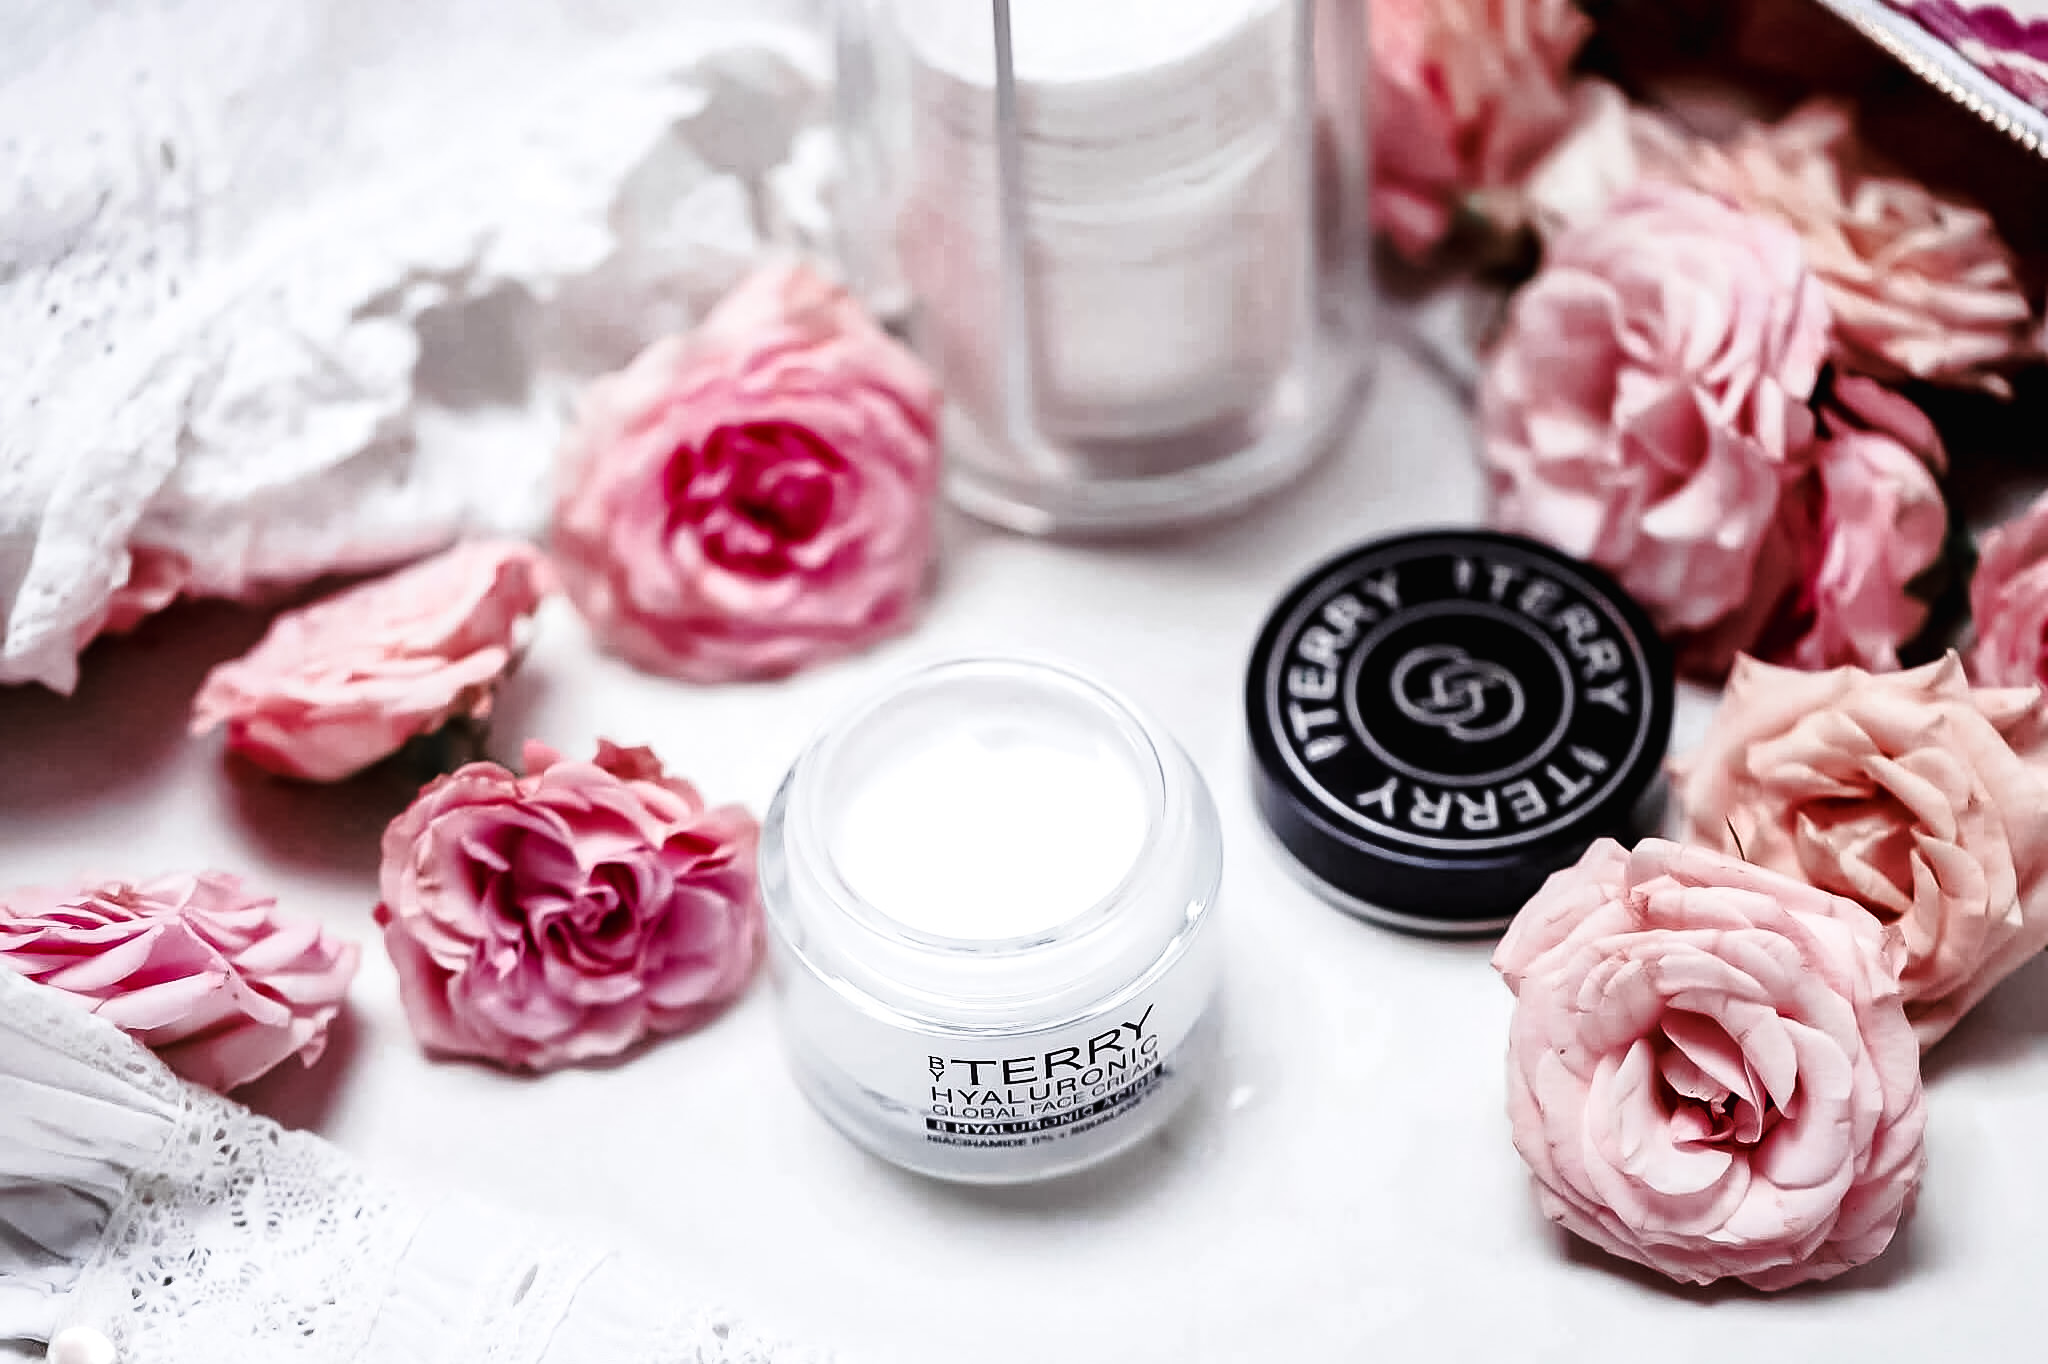 By Terry Hyaluronic Creme Visage